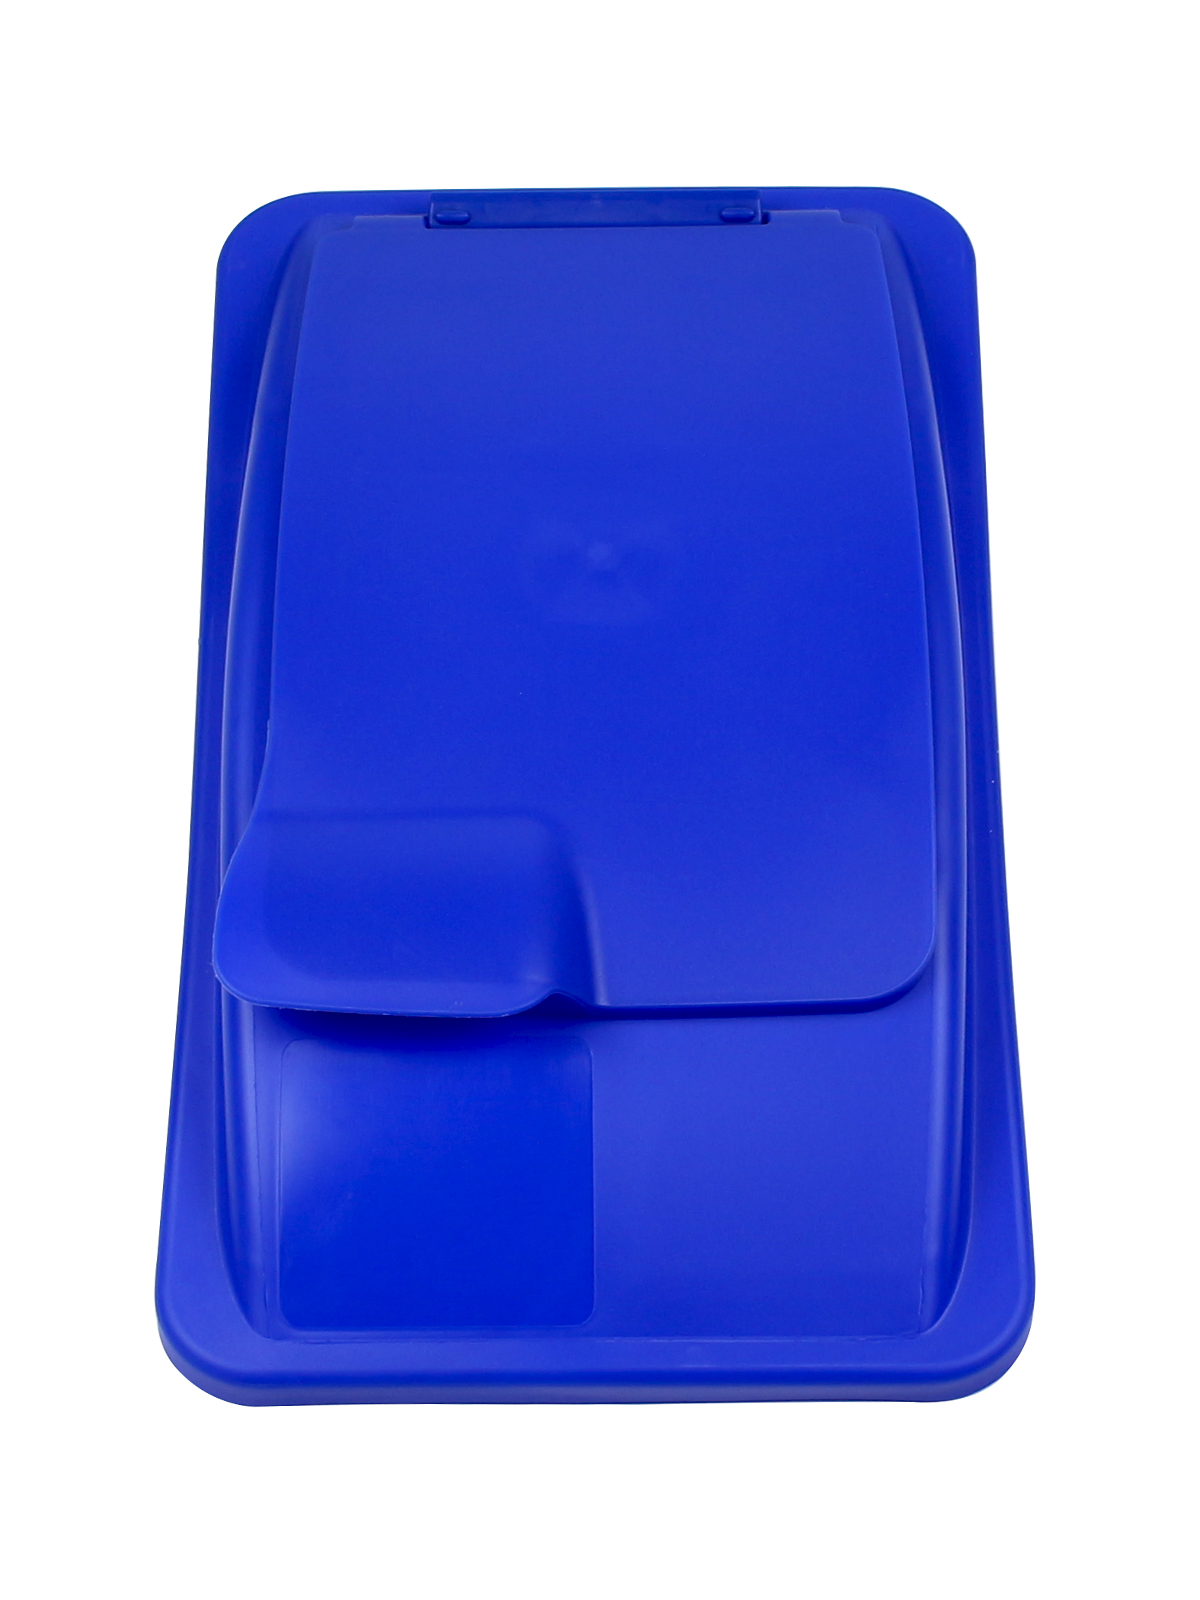 WASTE WATCHER - Lid - Solid Lift - Royal Blue